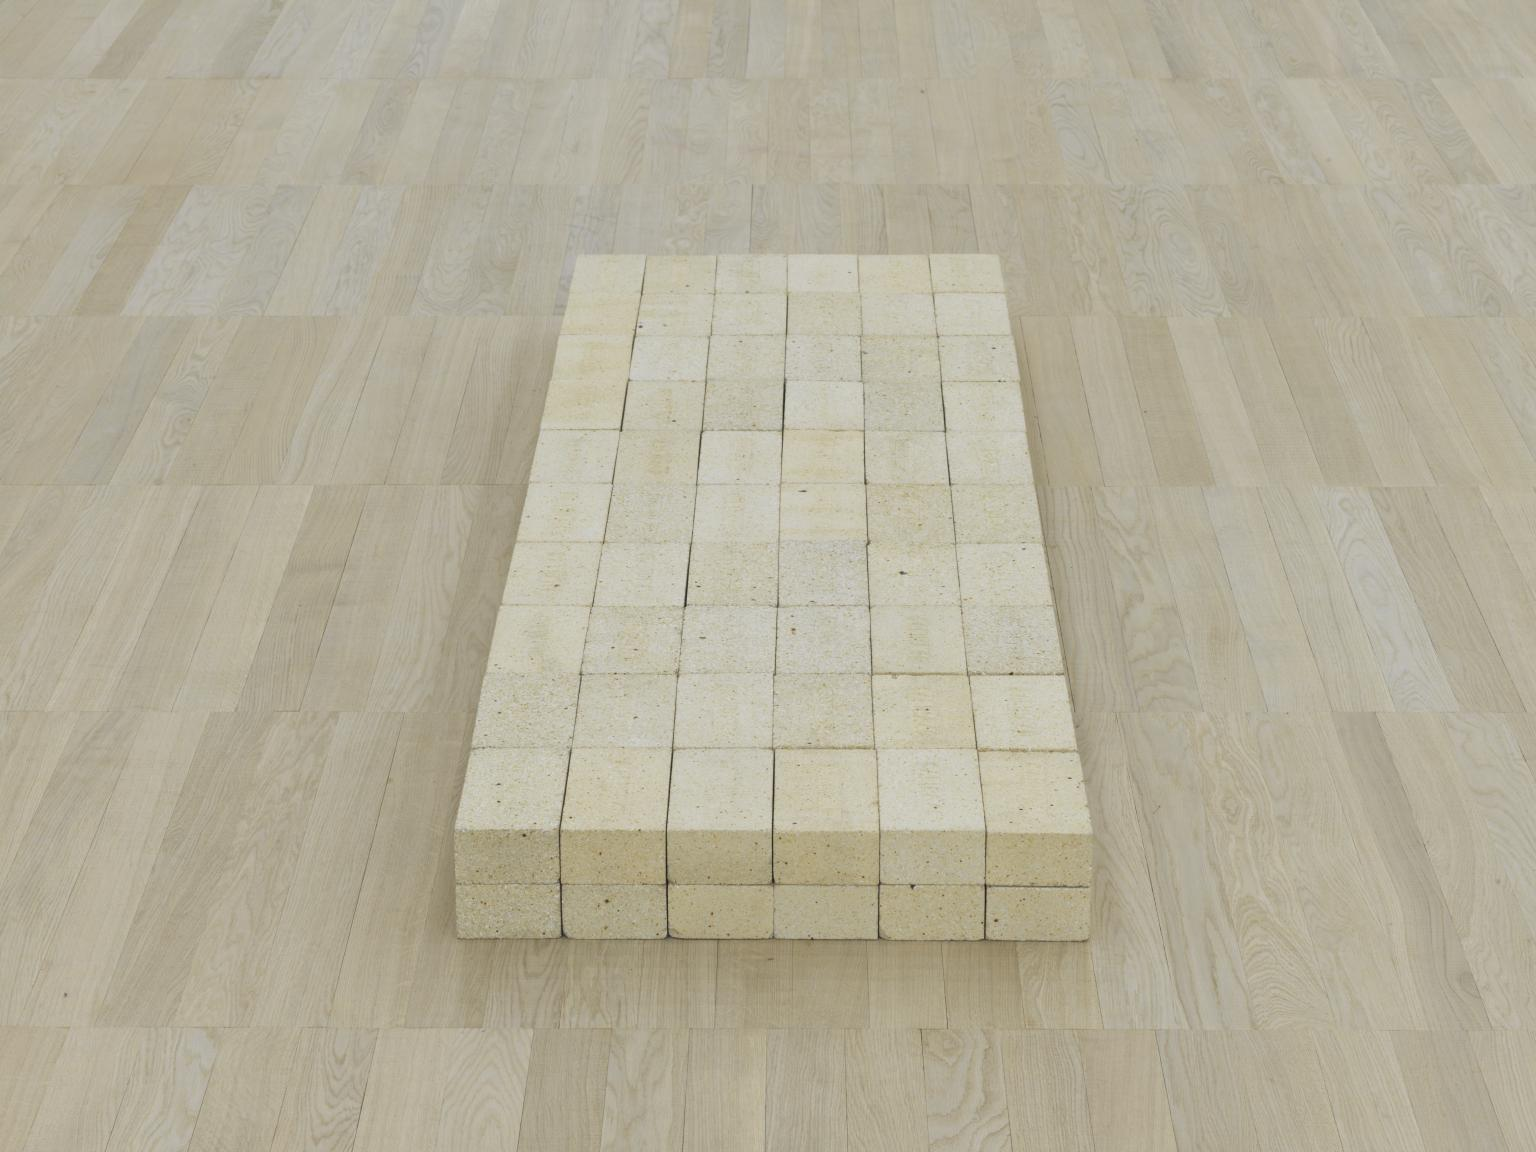 Carl Andre (1966) Equivalent VIII. 120 industrial fire bricks.